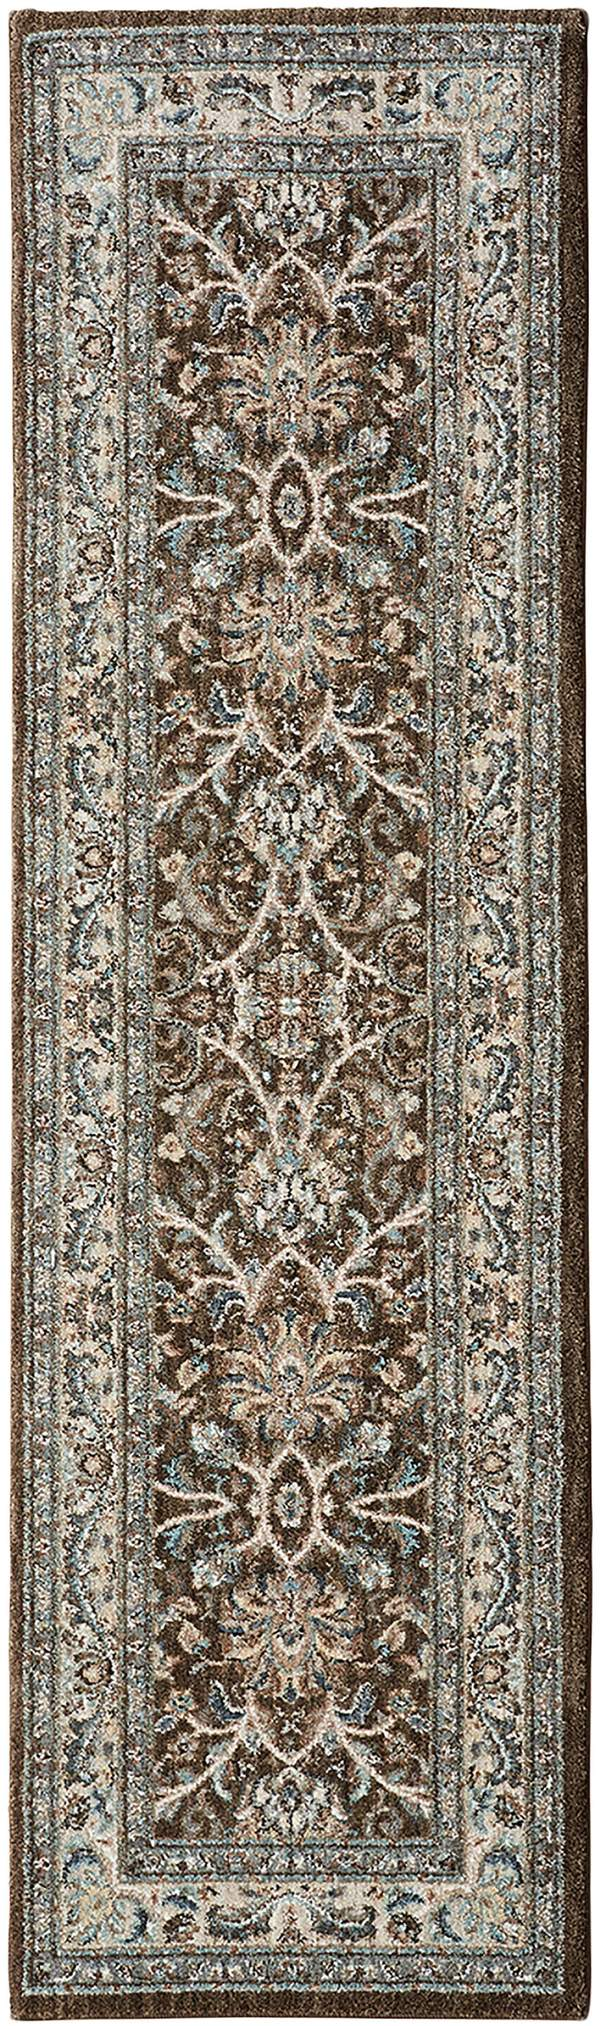 Karastan Rugs Euphoria Newbridge Brown